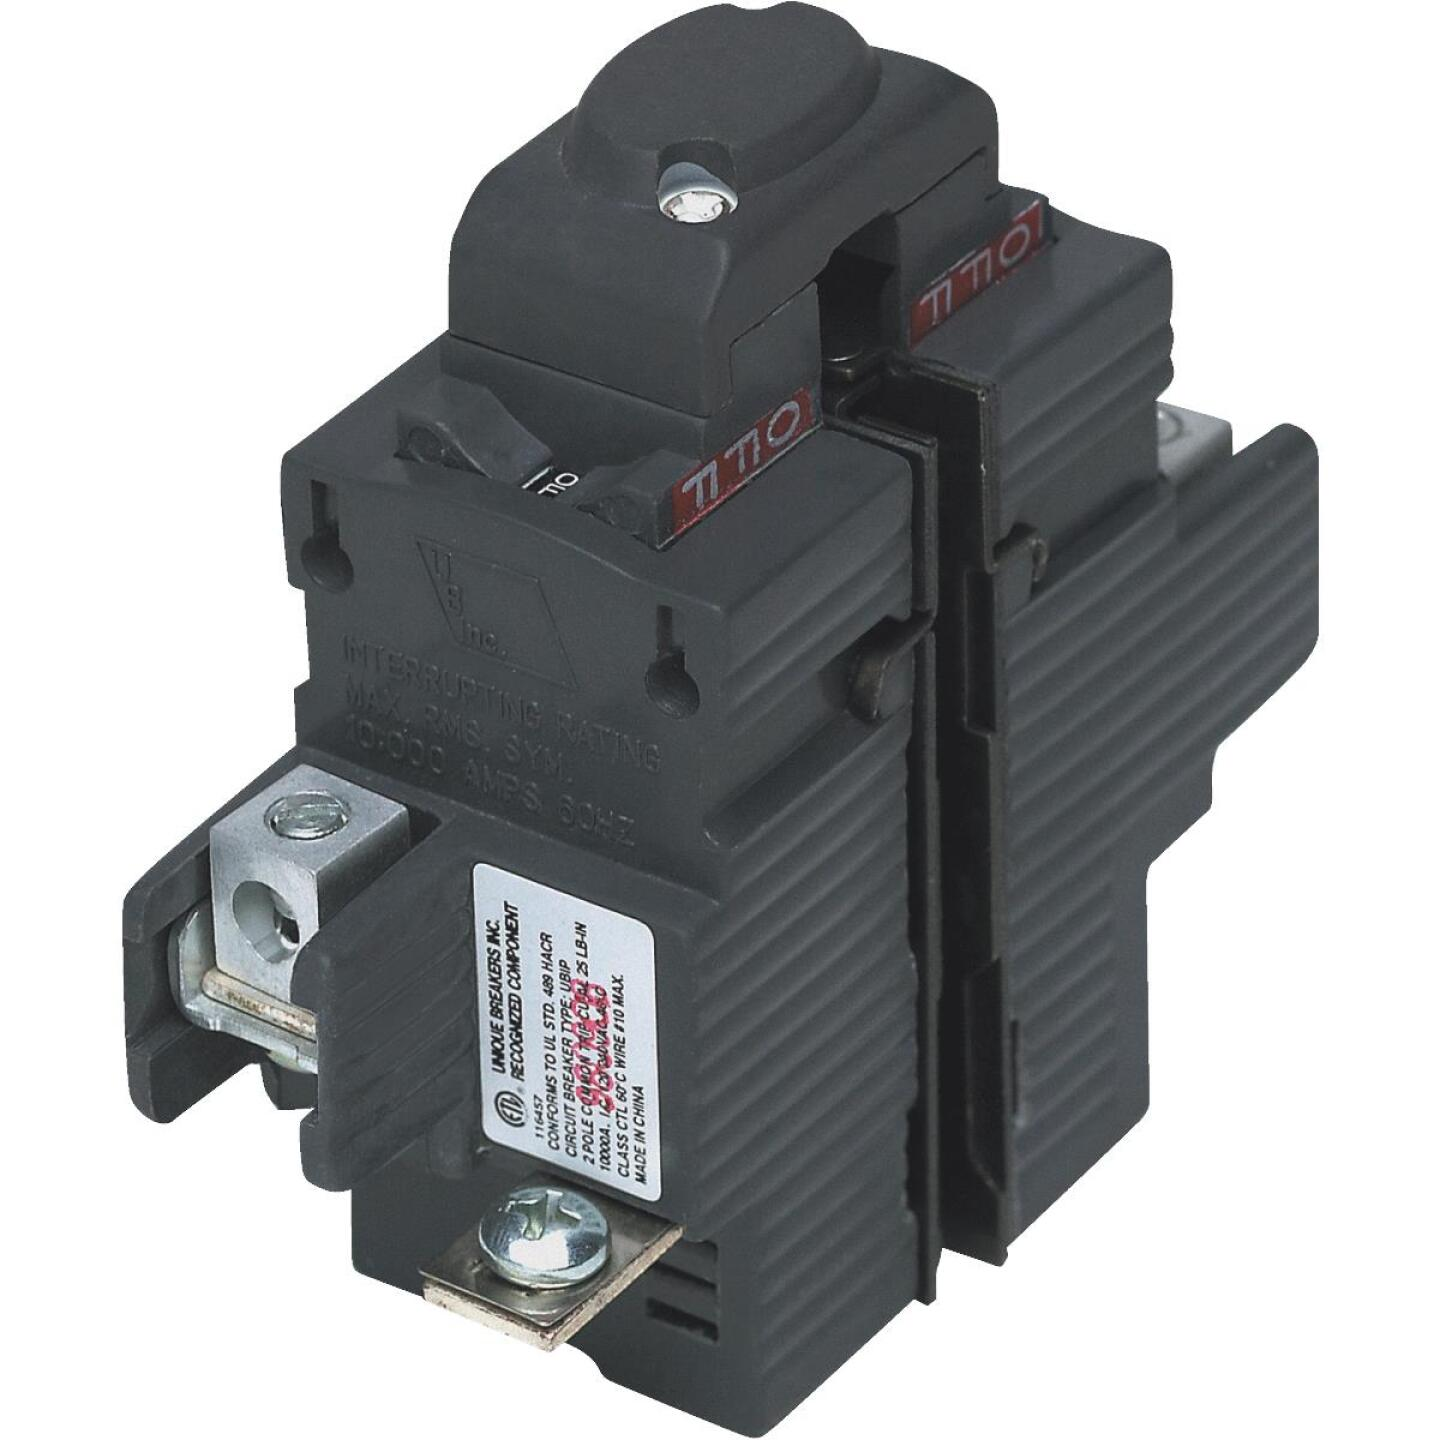 Connecticut Electric 60A Double-Pole Standard Trip Packaged Replacement Circuit Breaker For Pushmatic Image 1